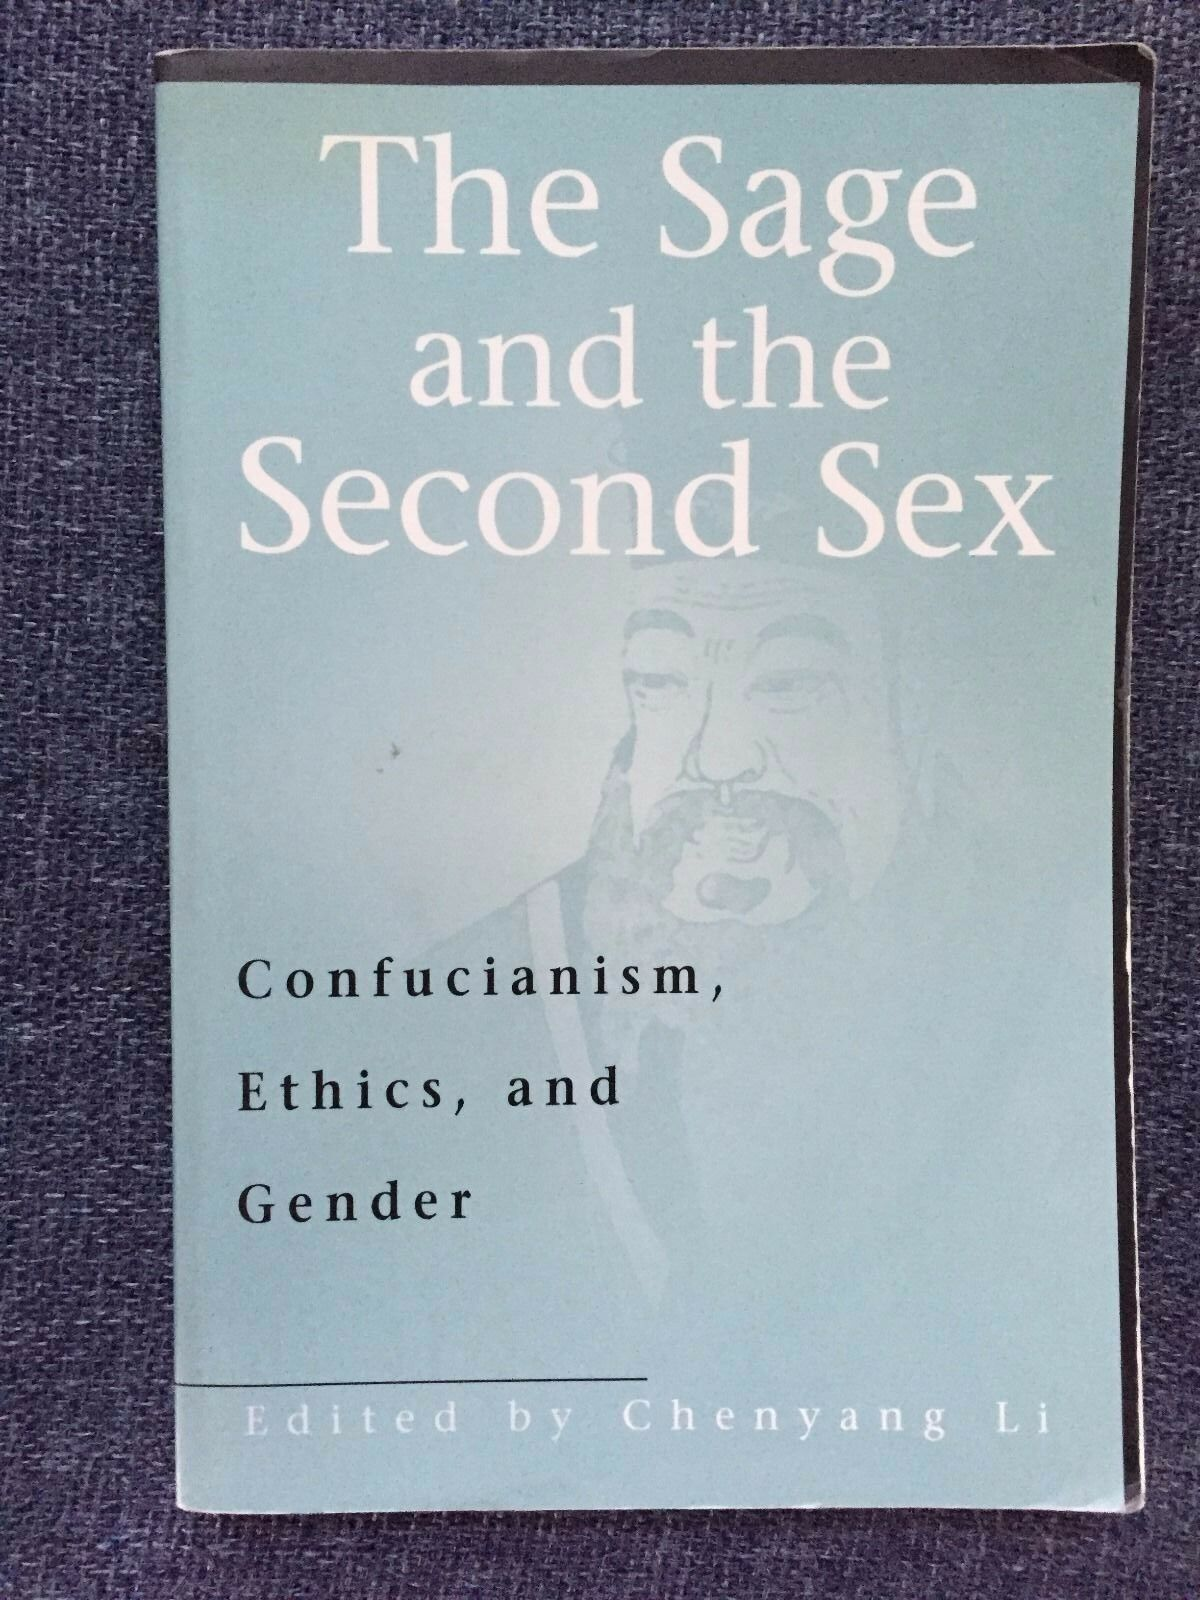 The Sage and the Second Sex : Confucianism, Ethics, and Gender (2000,  Paperback) | eBay